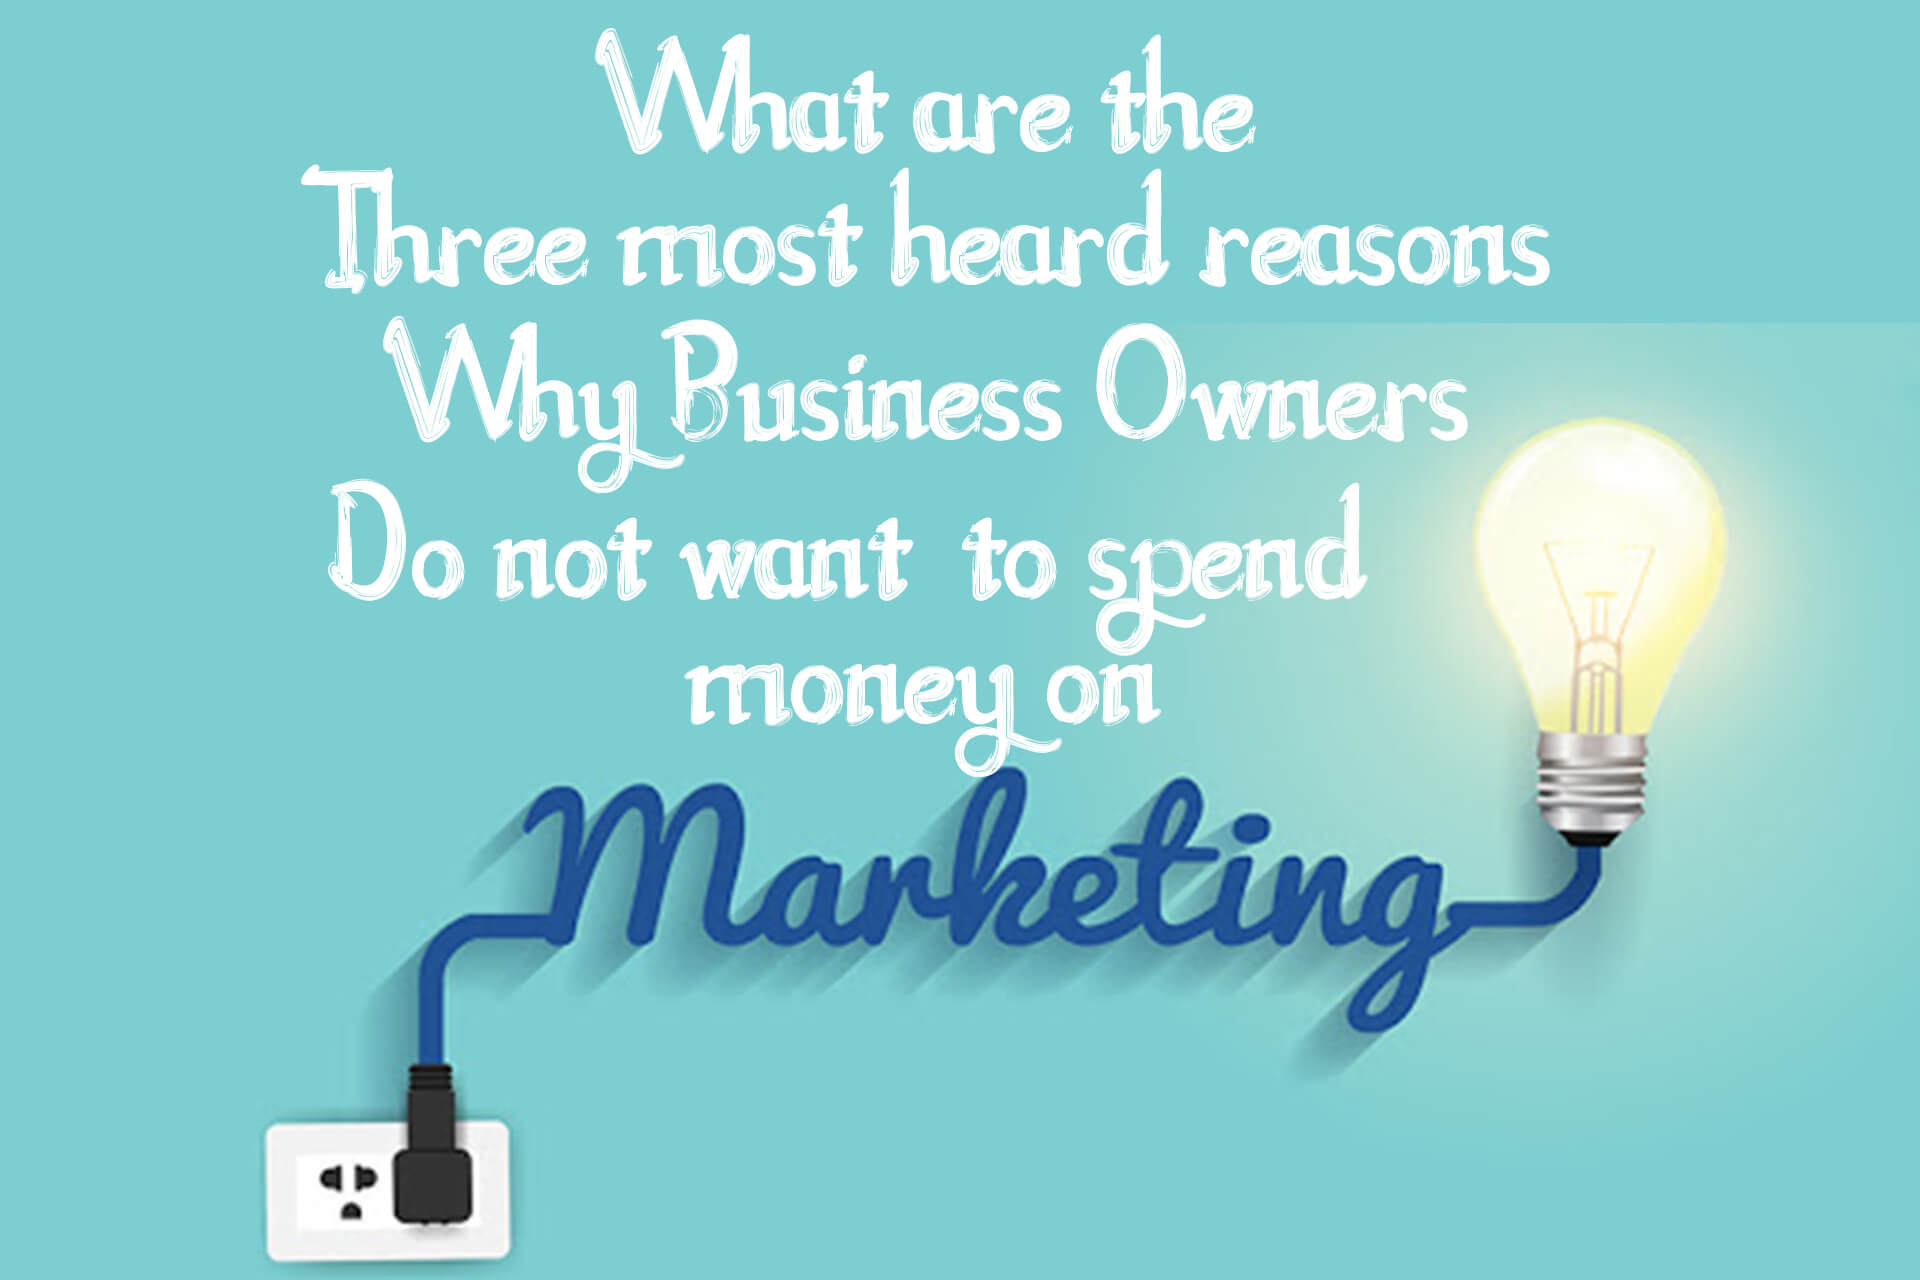 What Are The Three Most Heard Reasons Why Business Owners Do Not Want To Spend Money On Marketing?